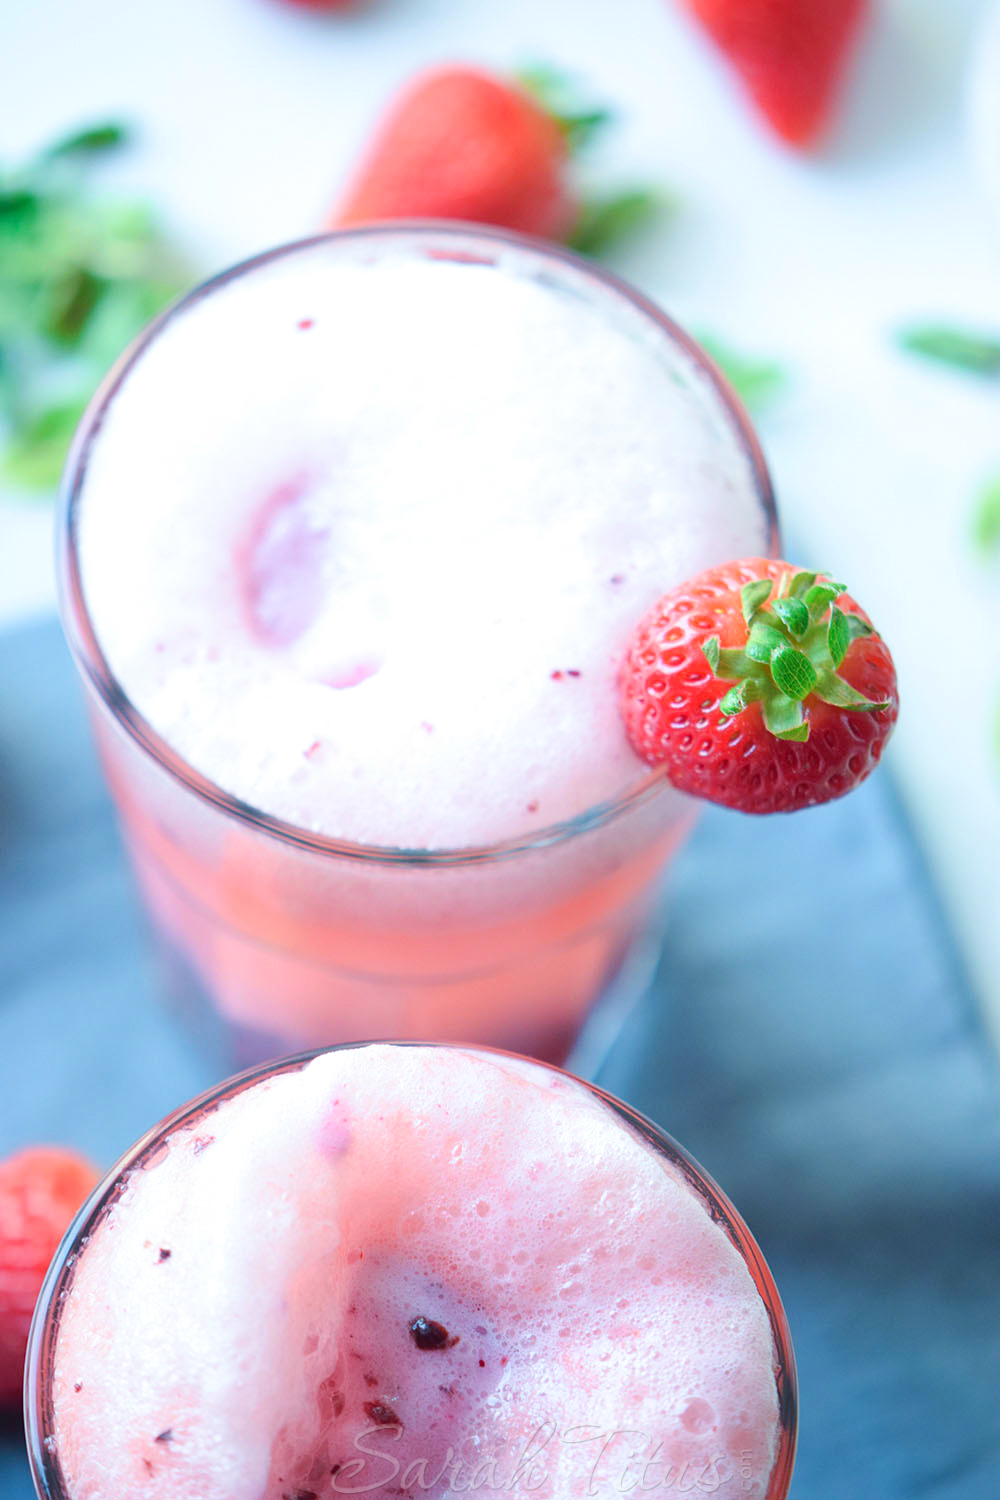 Topping the Very Berry Ice Cream Float with more ice cream and garnished with a fresh strawberry